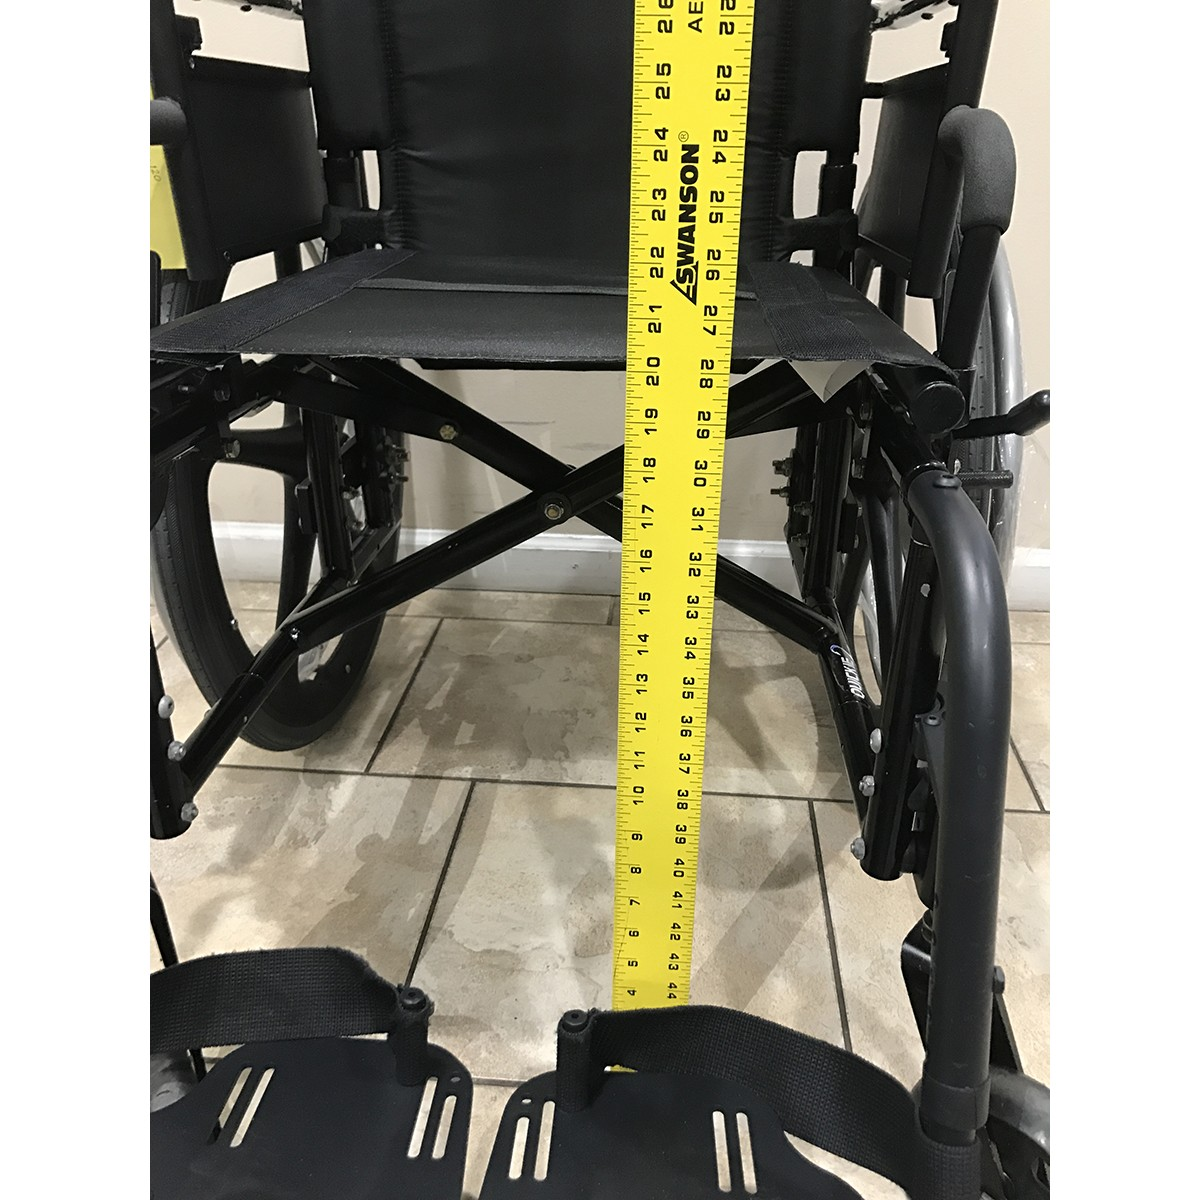 Measurement of Wheelchair to Floor on Used Quickie 2 Folding Lightweight Wheelchair